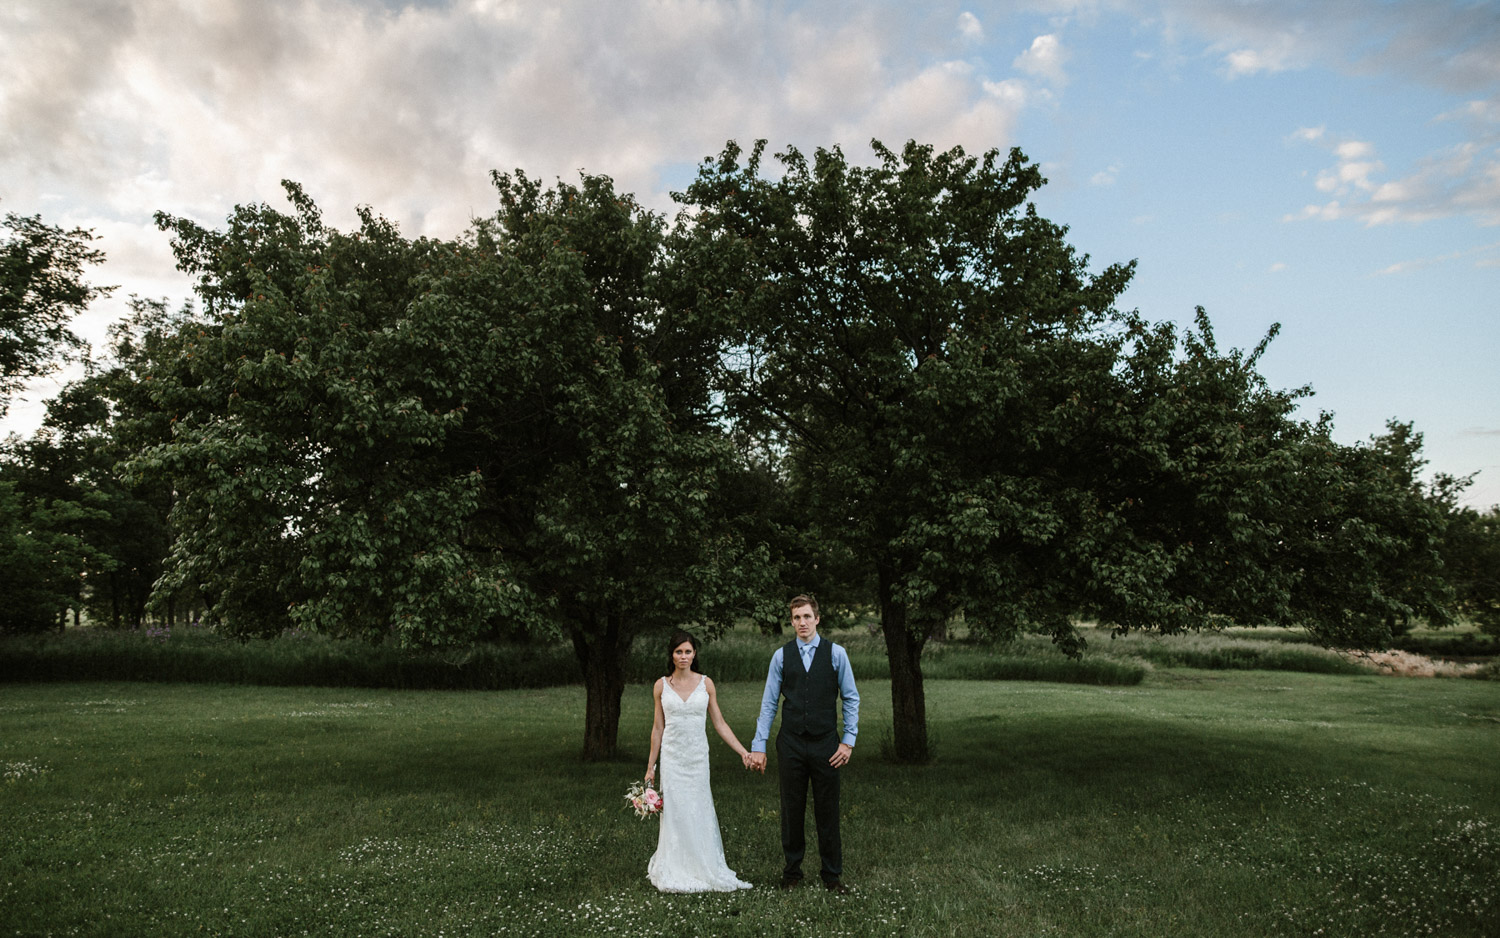 Outdoor_Wedding_SiouxFalls_MaryJoWegnerArboretum_Photographer_Calli&Jon_137.jpg